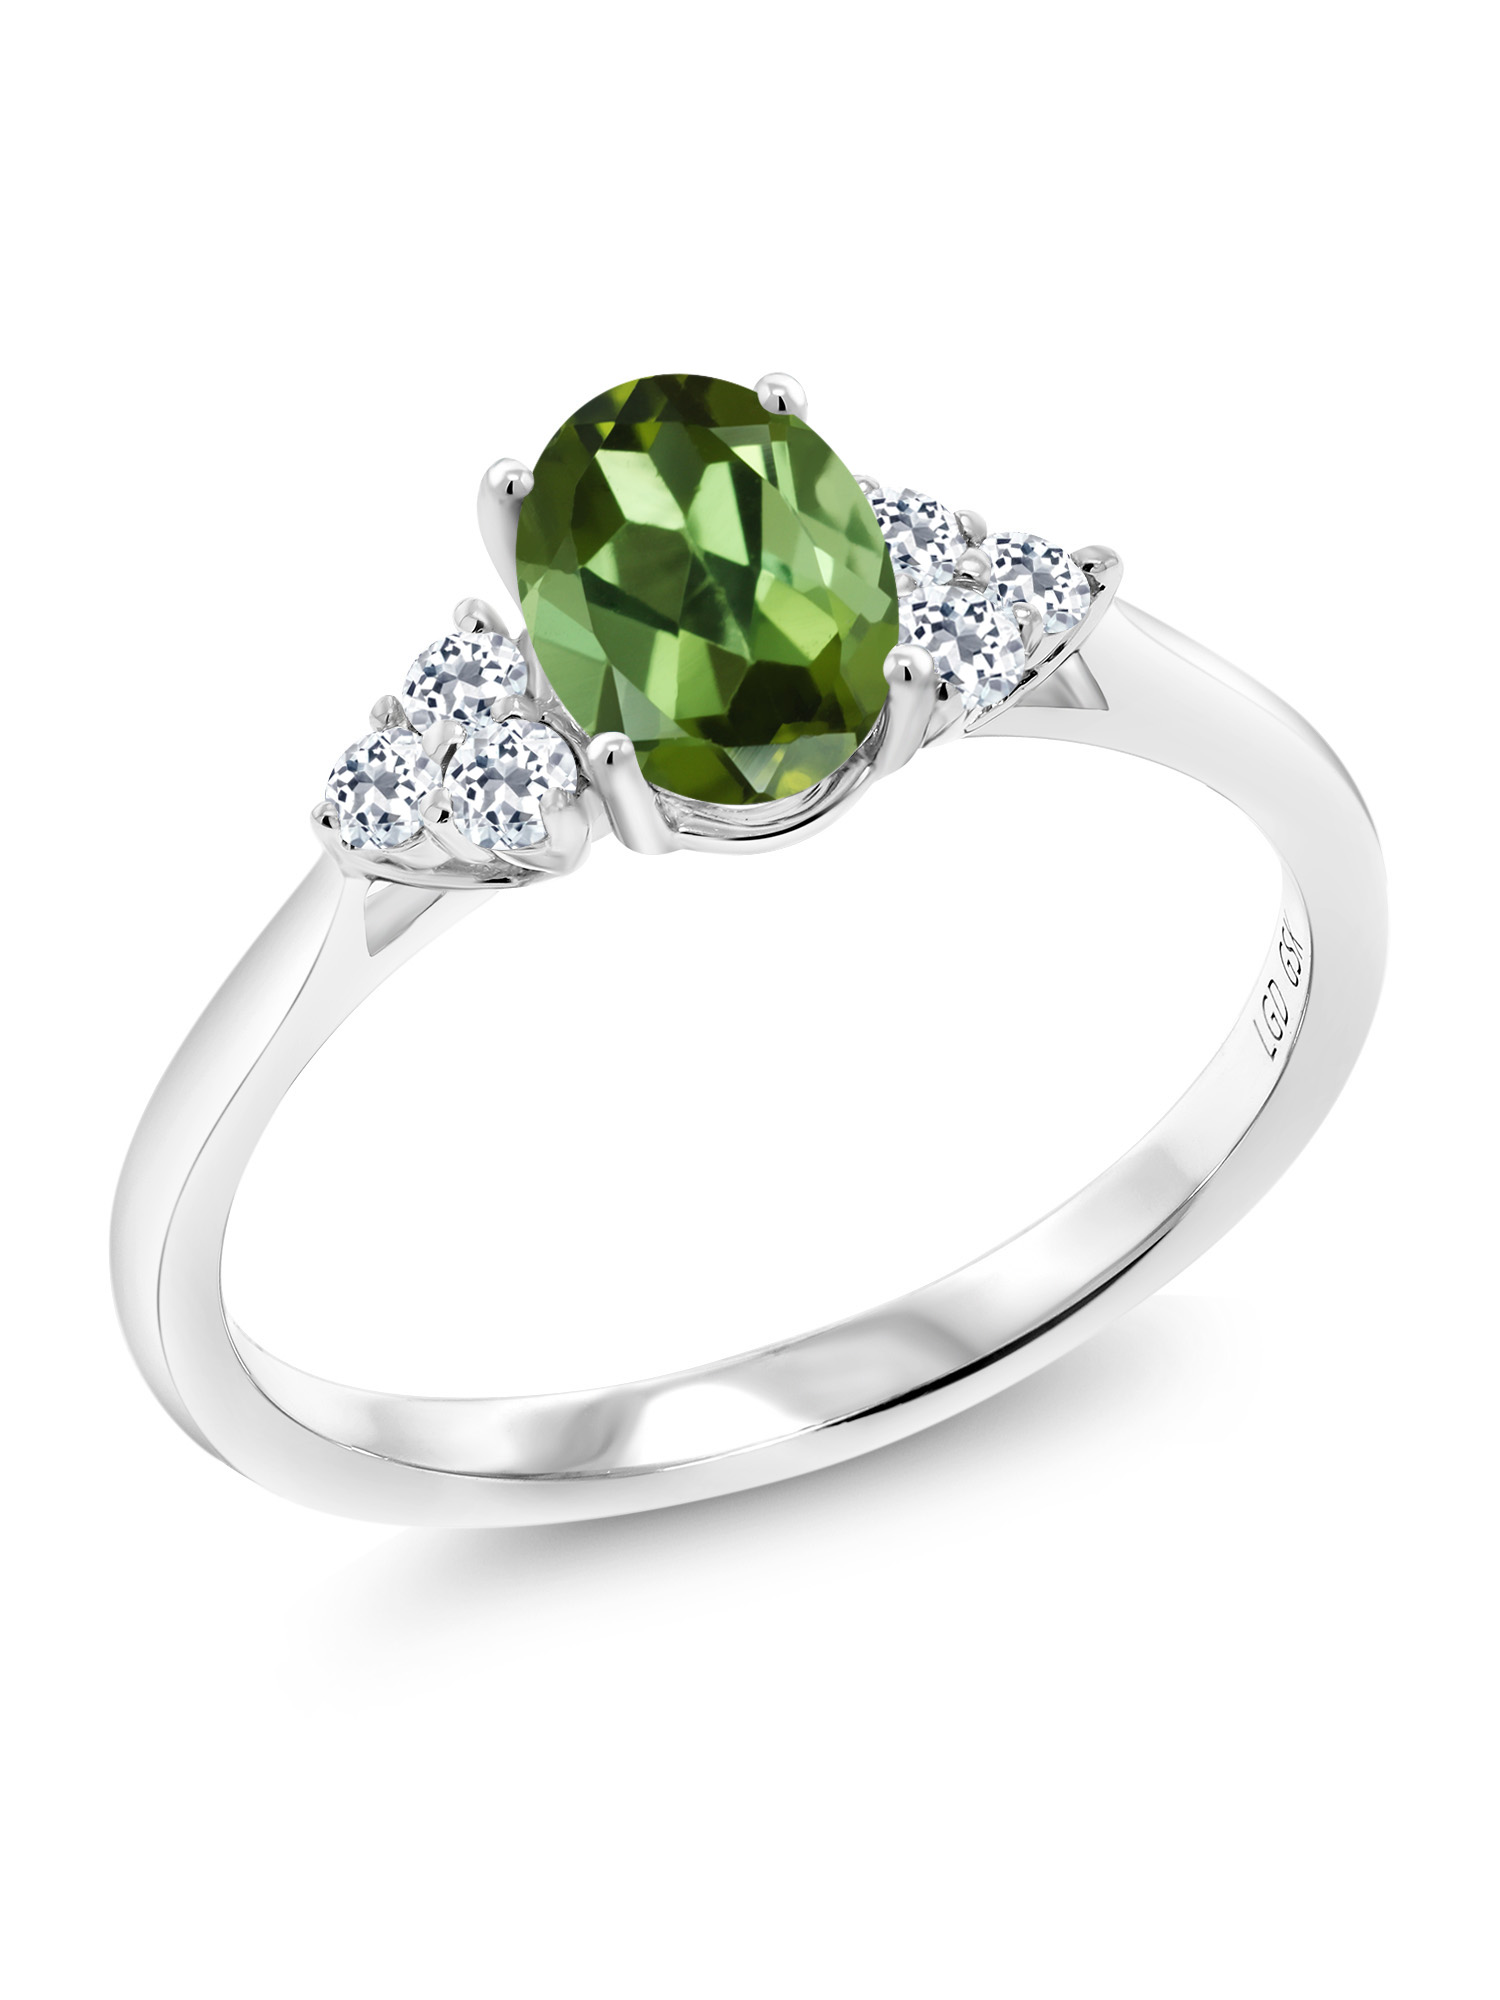 0.94 Ct Oval Green Tourmaline White Topaz 10K White Gold Ring by